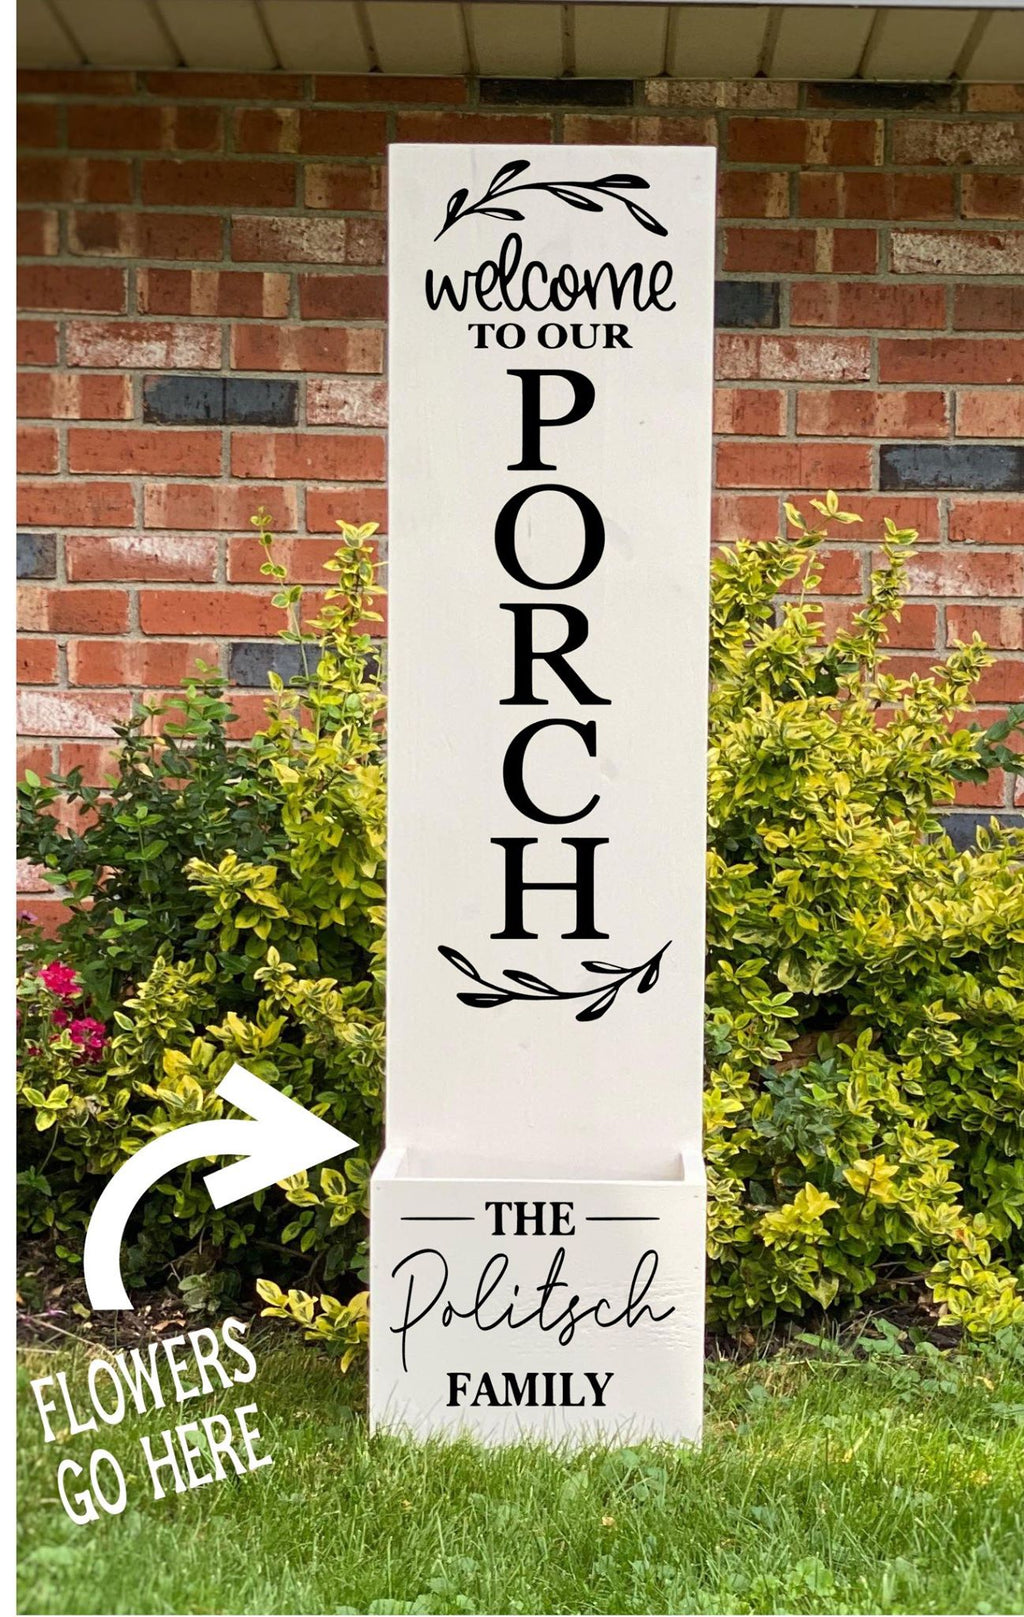 Porch Planter - Welcome to our porch with family name